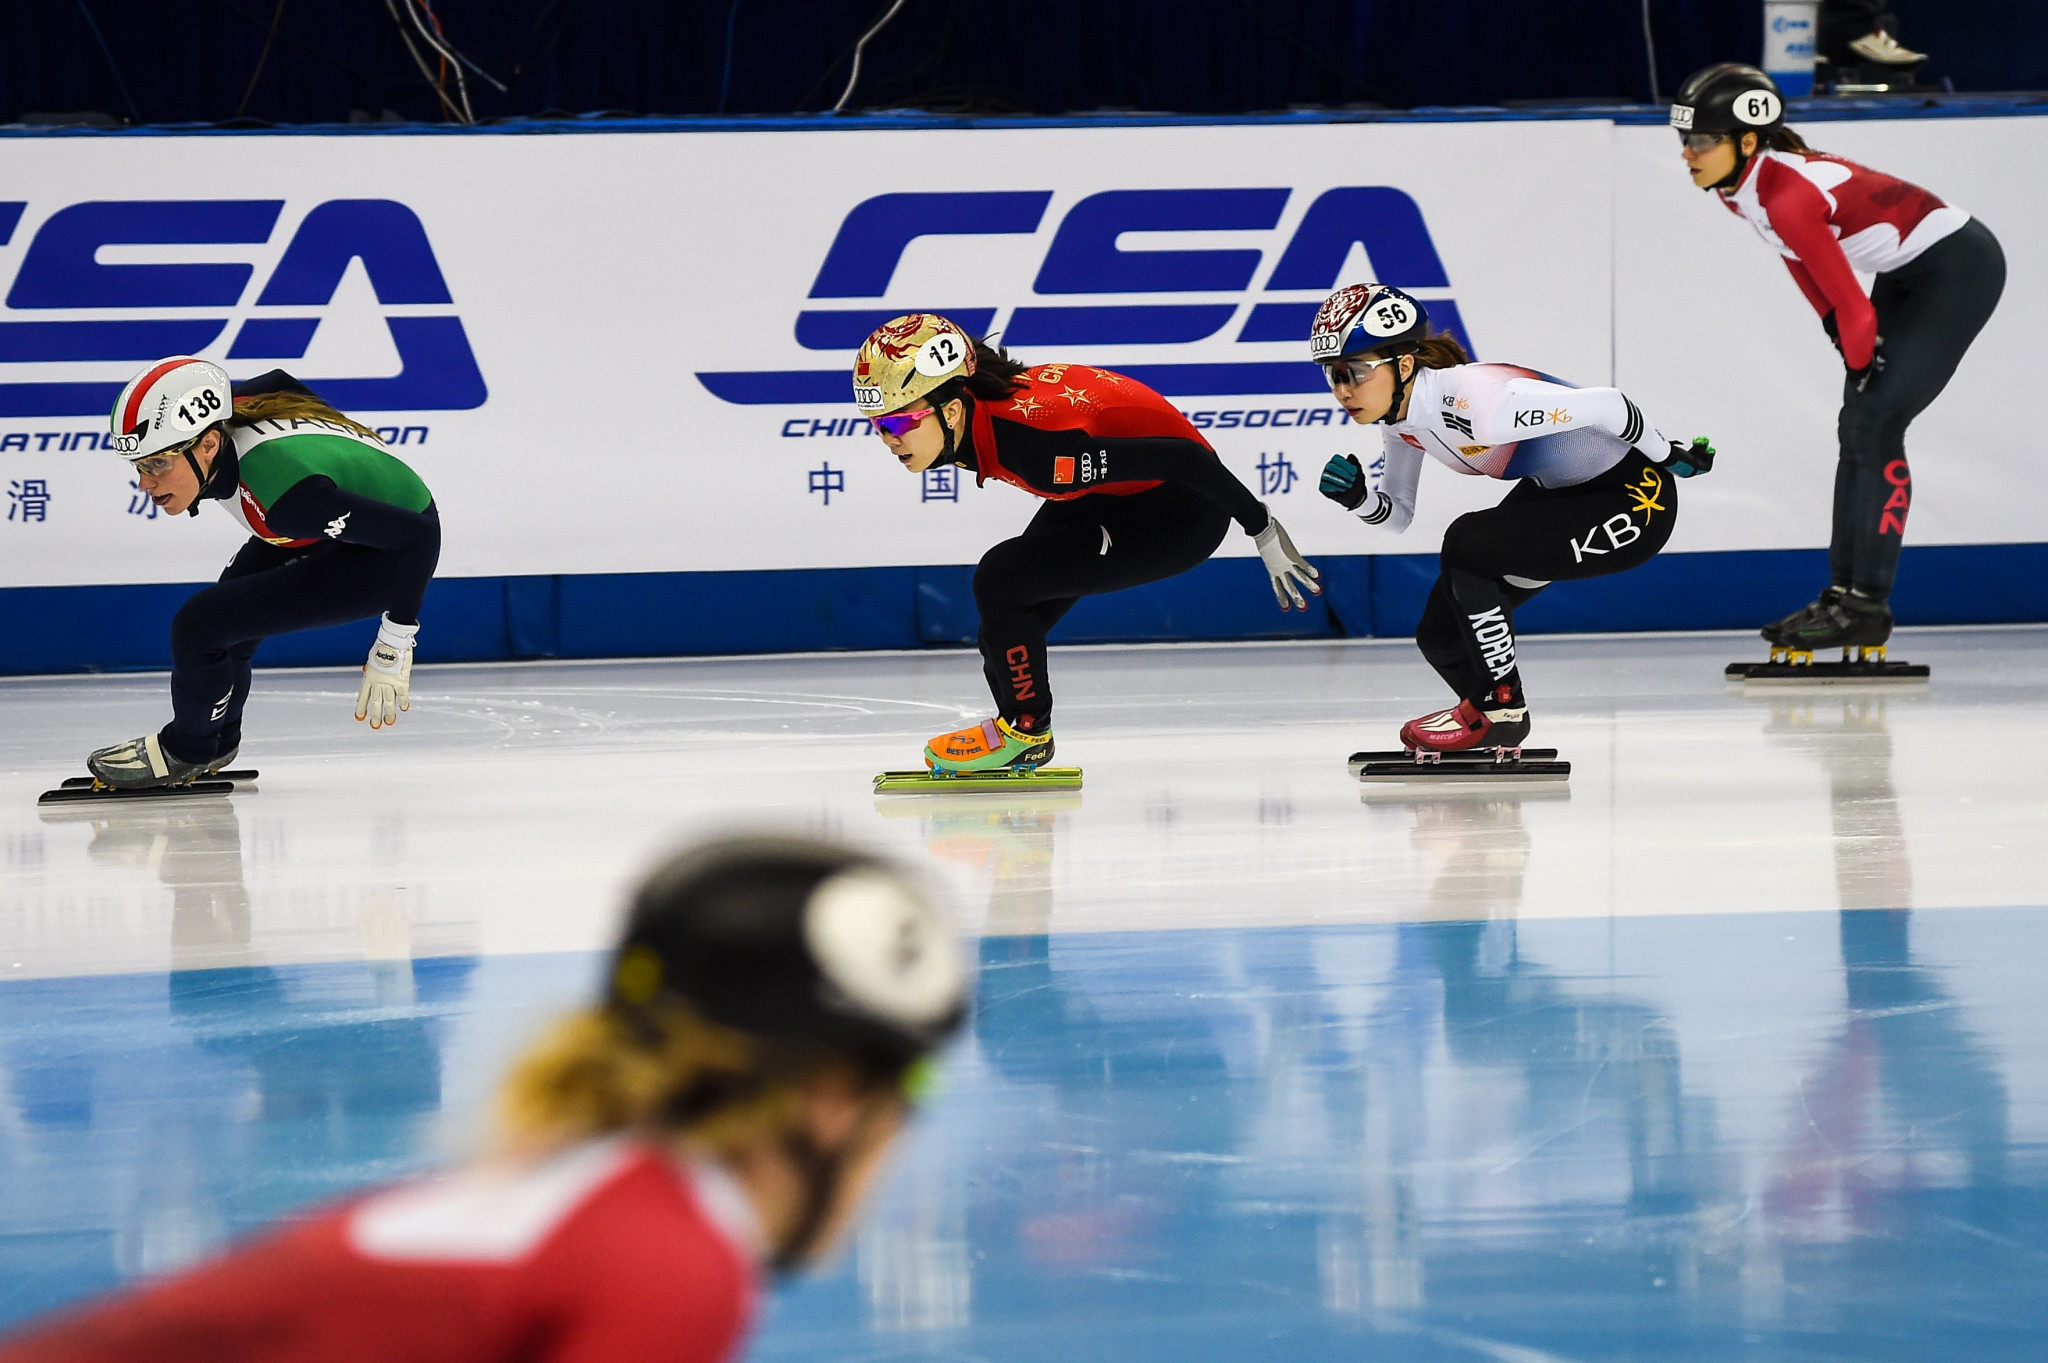 Pyeongchang 2018 qualification to conclude at season-ending ISU Short Track World Cup